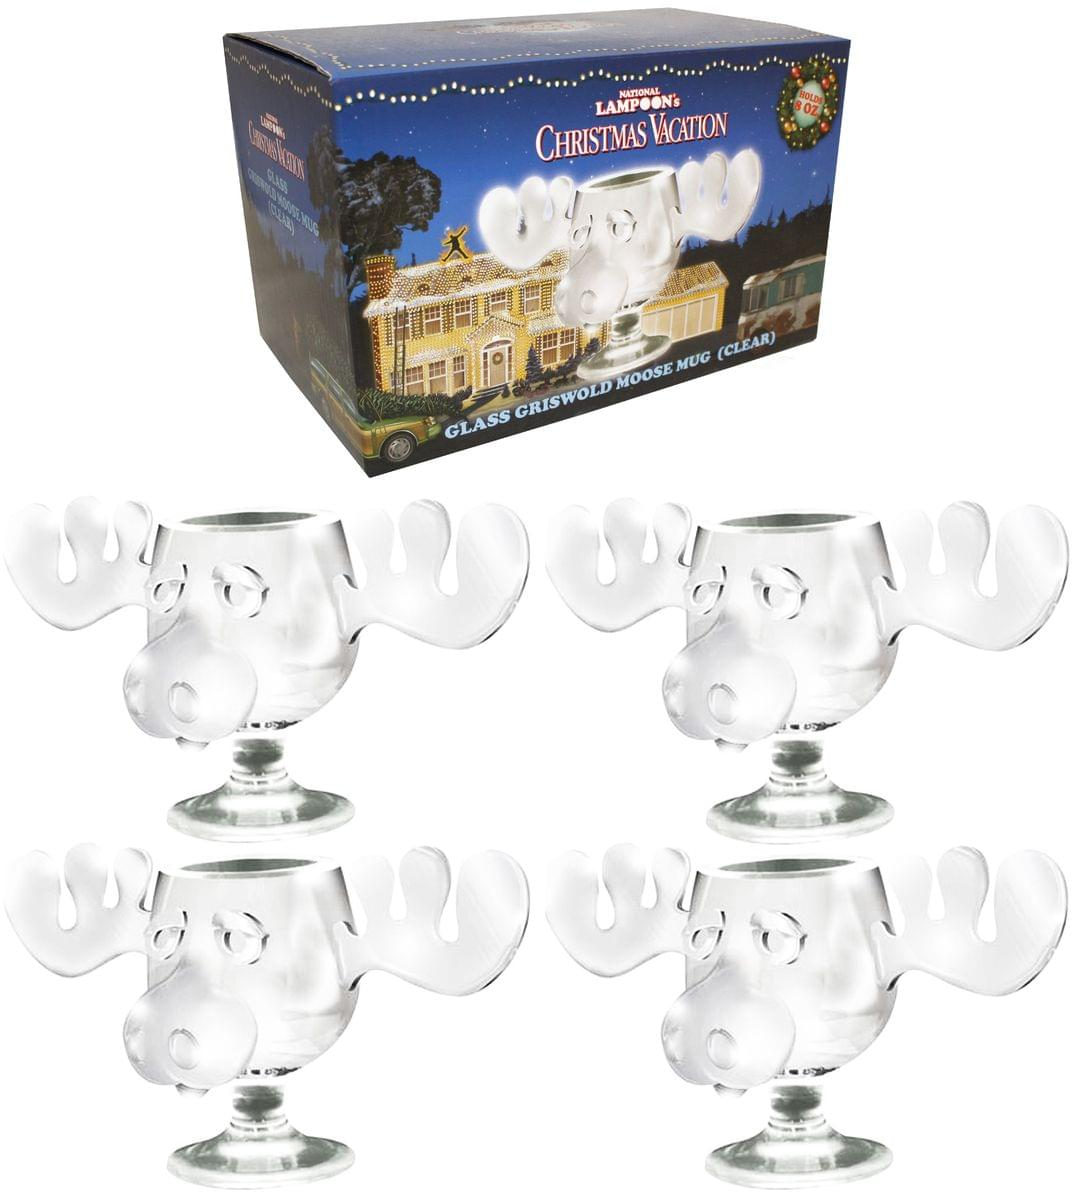 national lampoons christmas vacation griswold moose mug 8oz glass set - Christmas Vacation Moose Mug